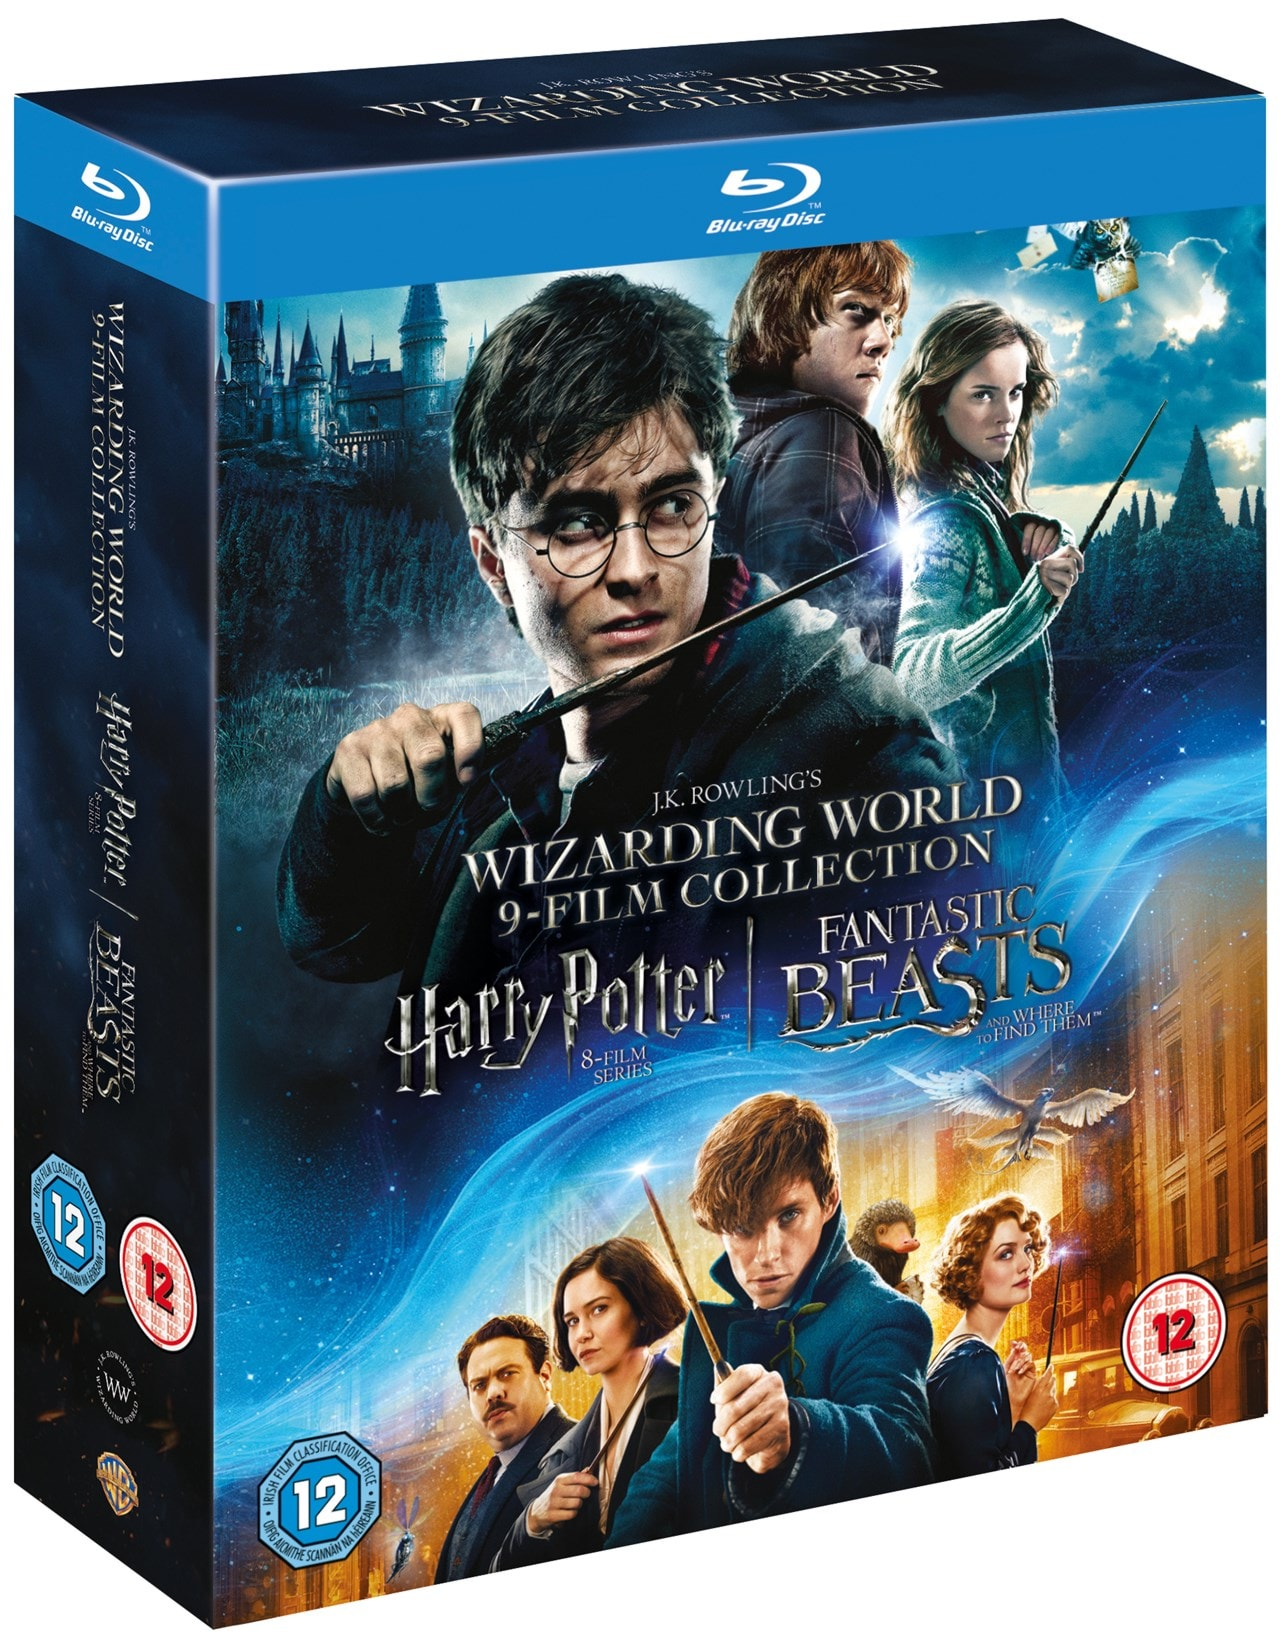 Wizarding World 9-film Collection - 2